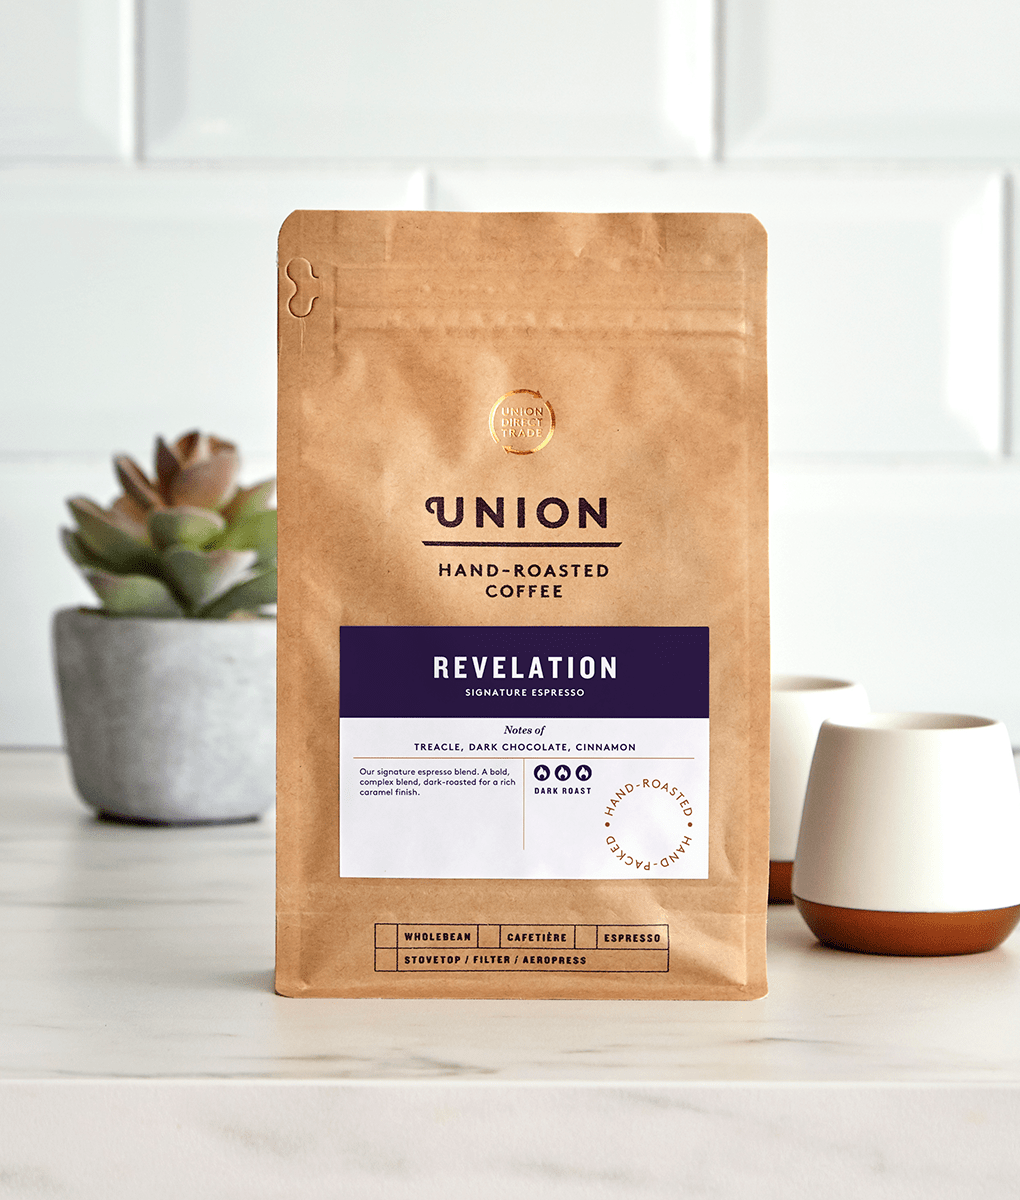 Revelation Signature Espresso, Union Coffee Bag